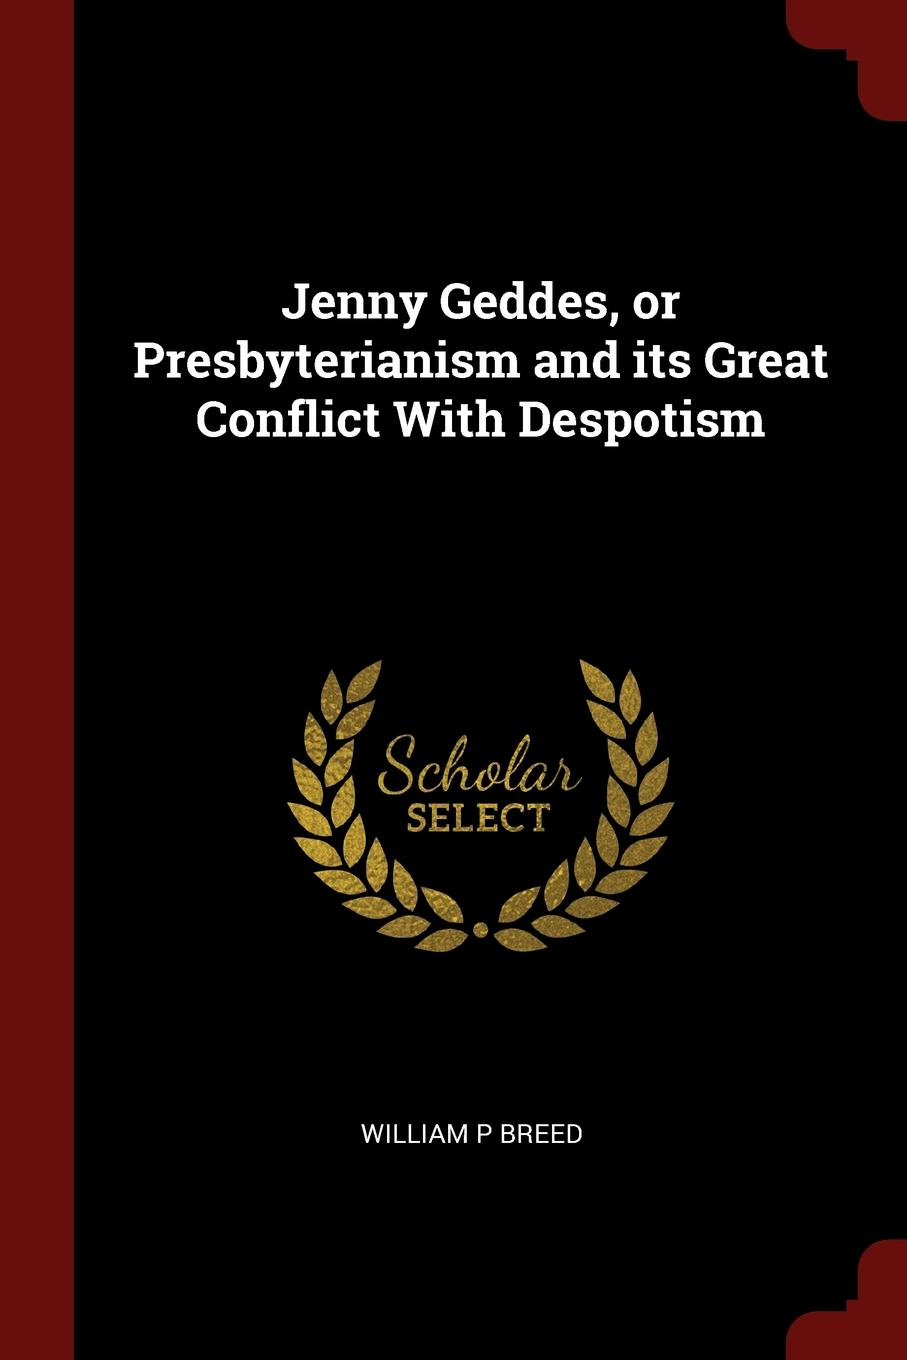 Jenny Geddes, or Presbyterianism and its Great Conflict With Despotism. William P Breed